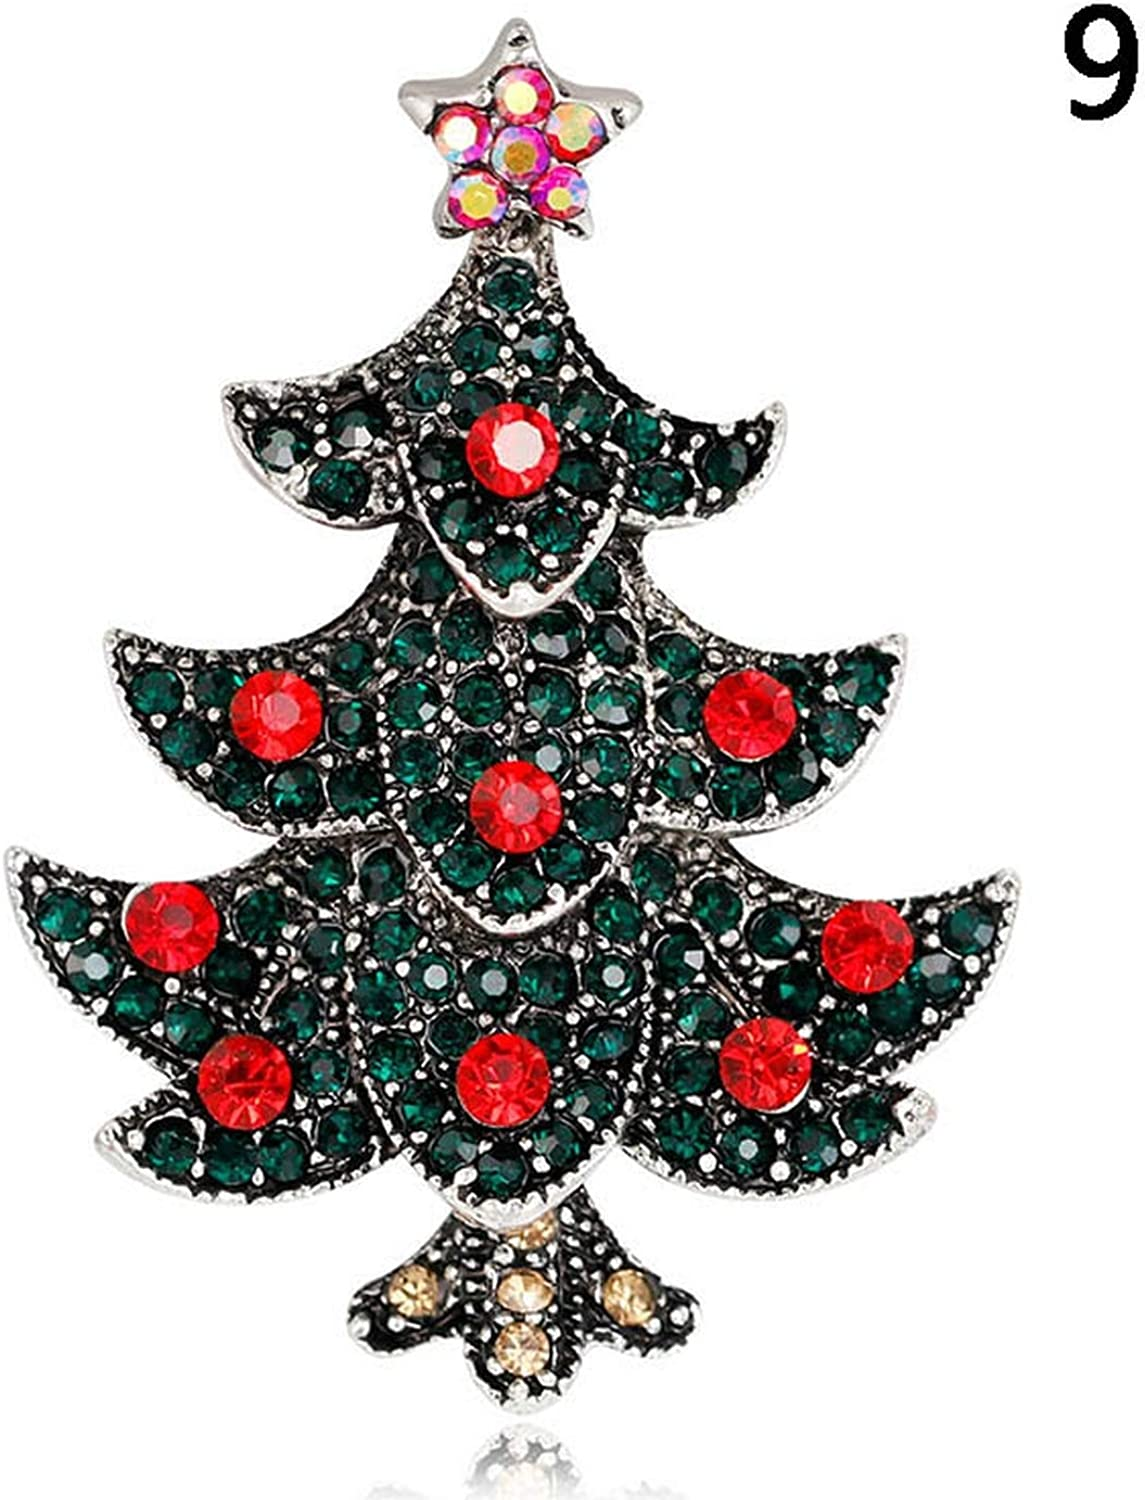 Encounter/_meet pins Brooches Christmas Jewelry Xmas Tree Deer Snowman Brooch Party Brooch Pin,Style 14